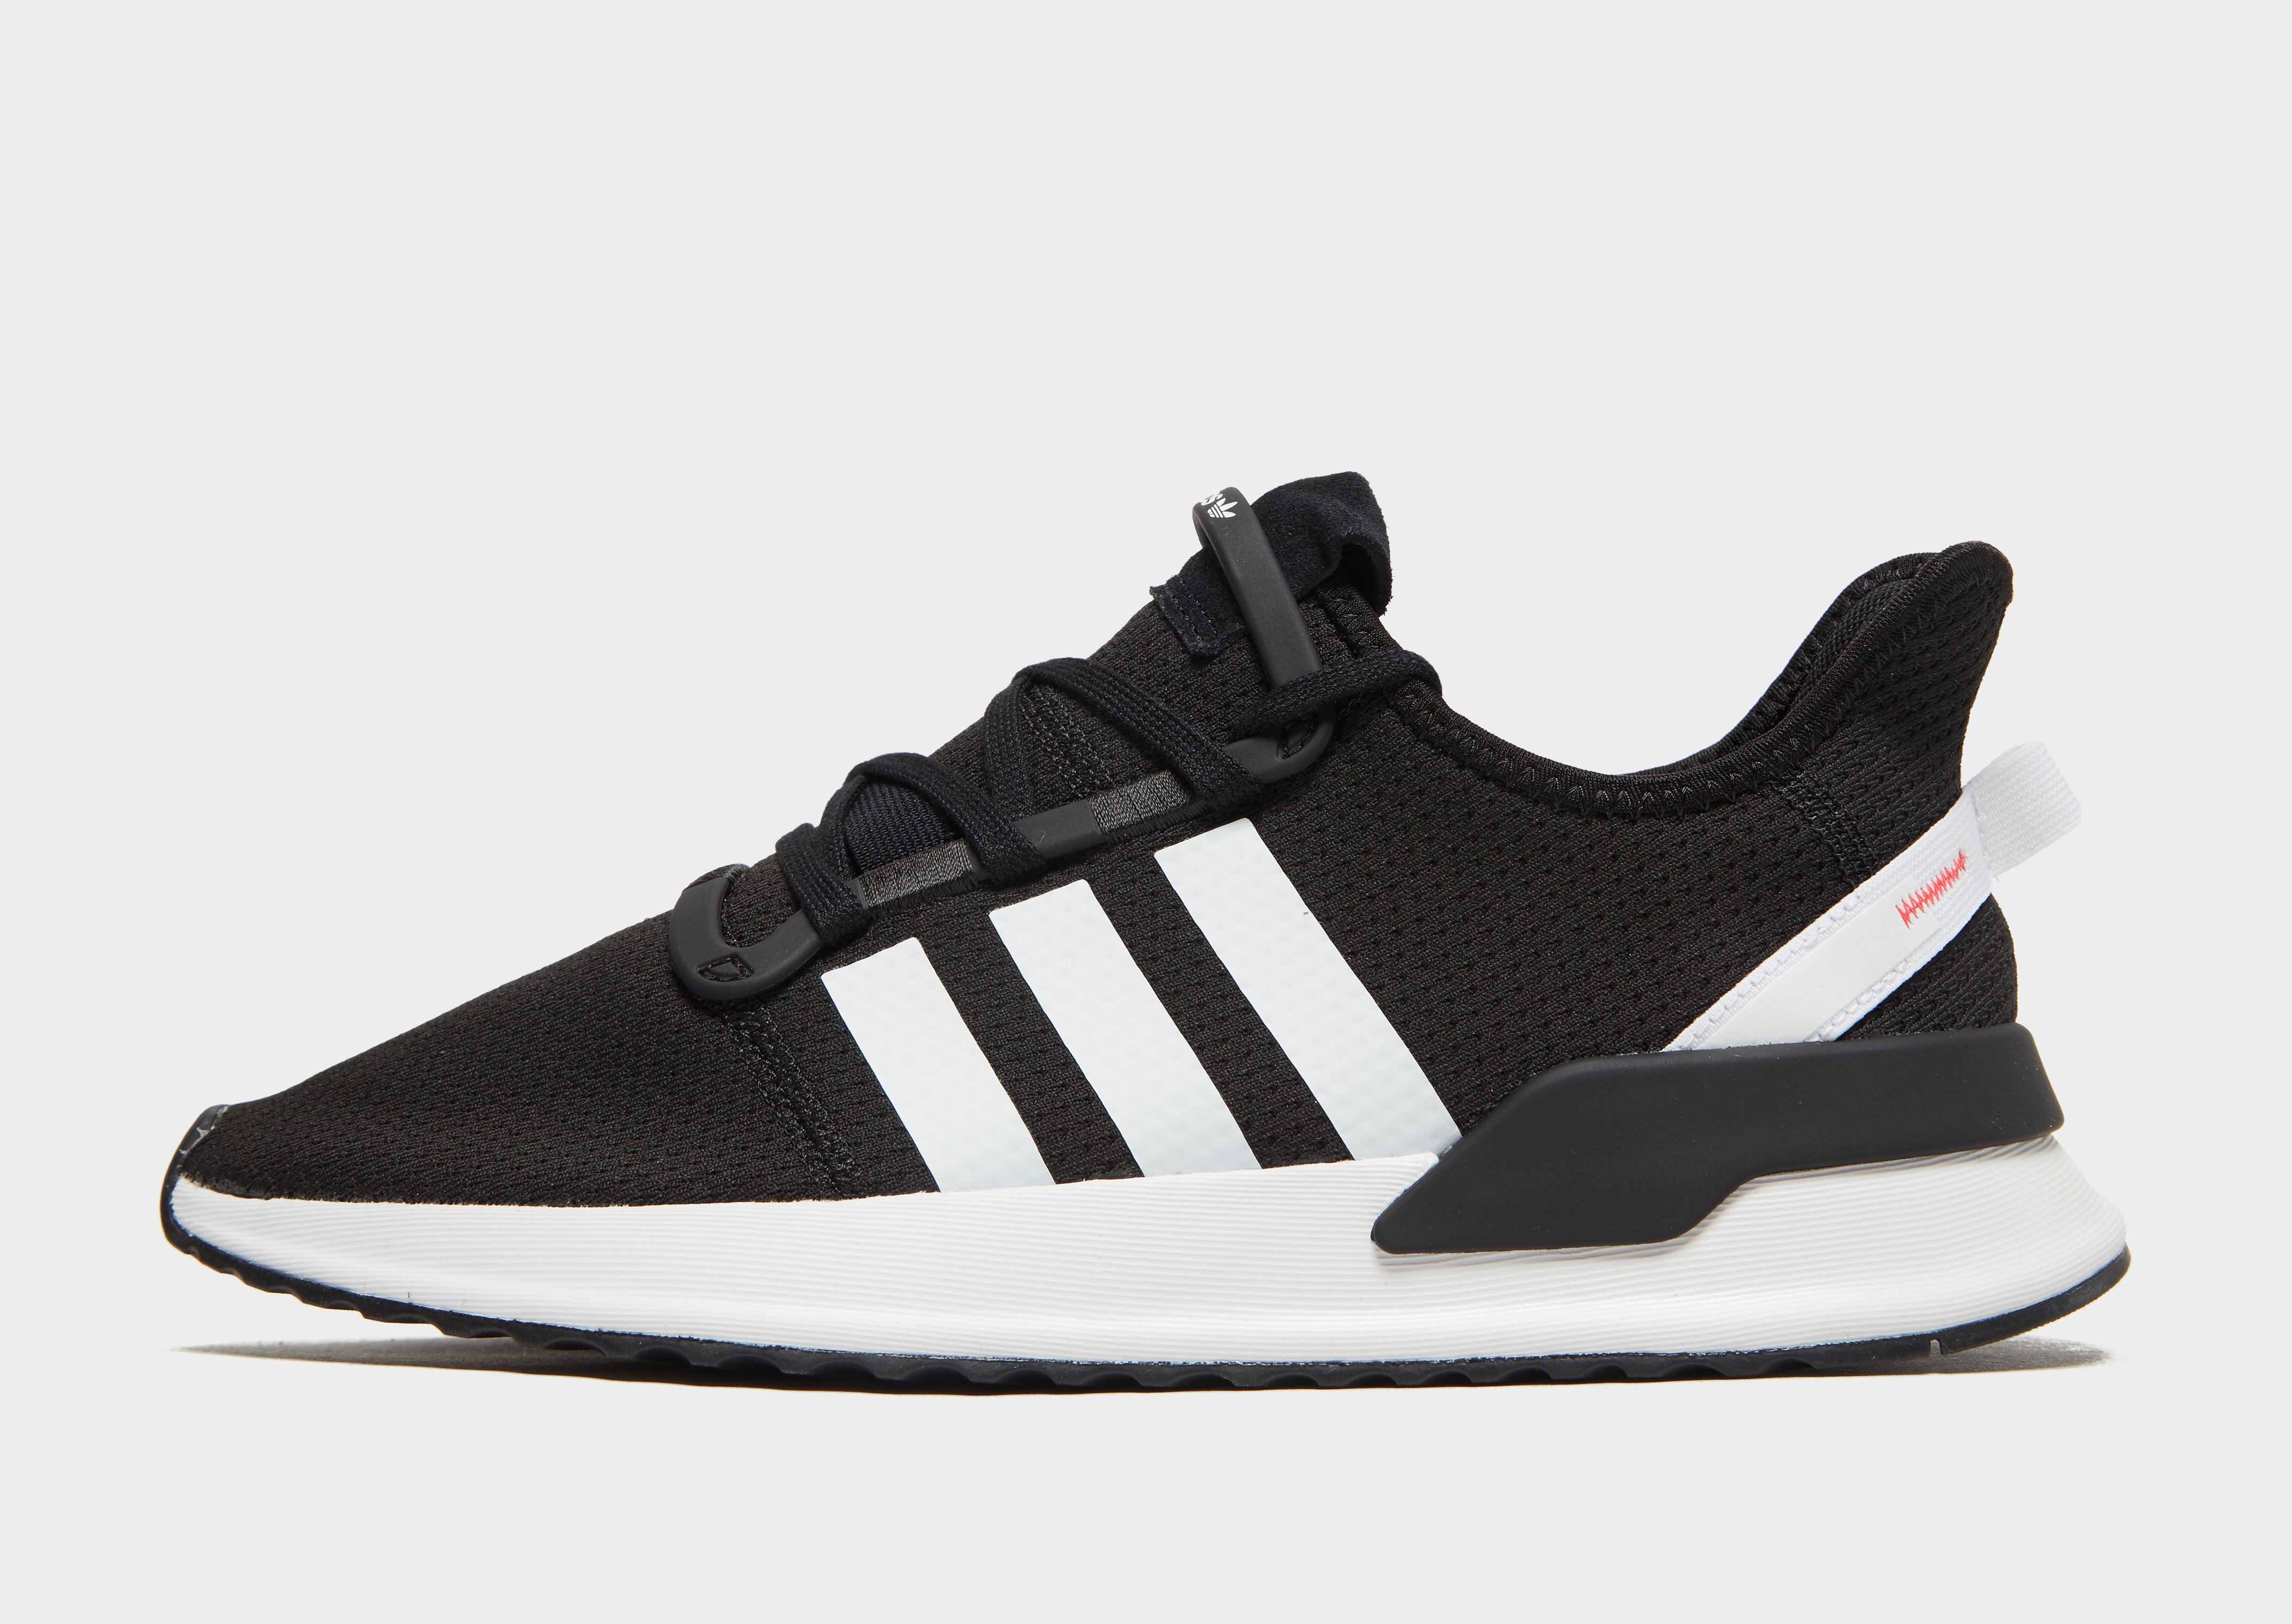 Best Adidas Shoes For Wide Feet Adidas Shoes Sale Shopping